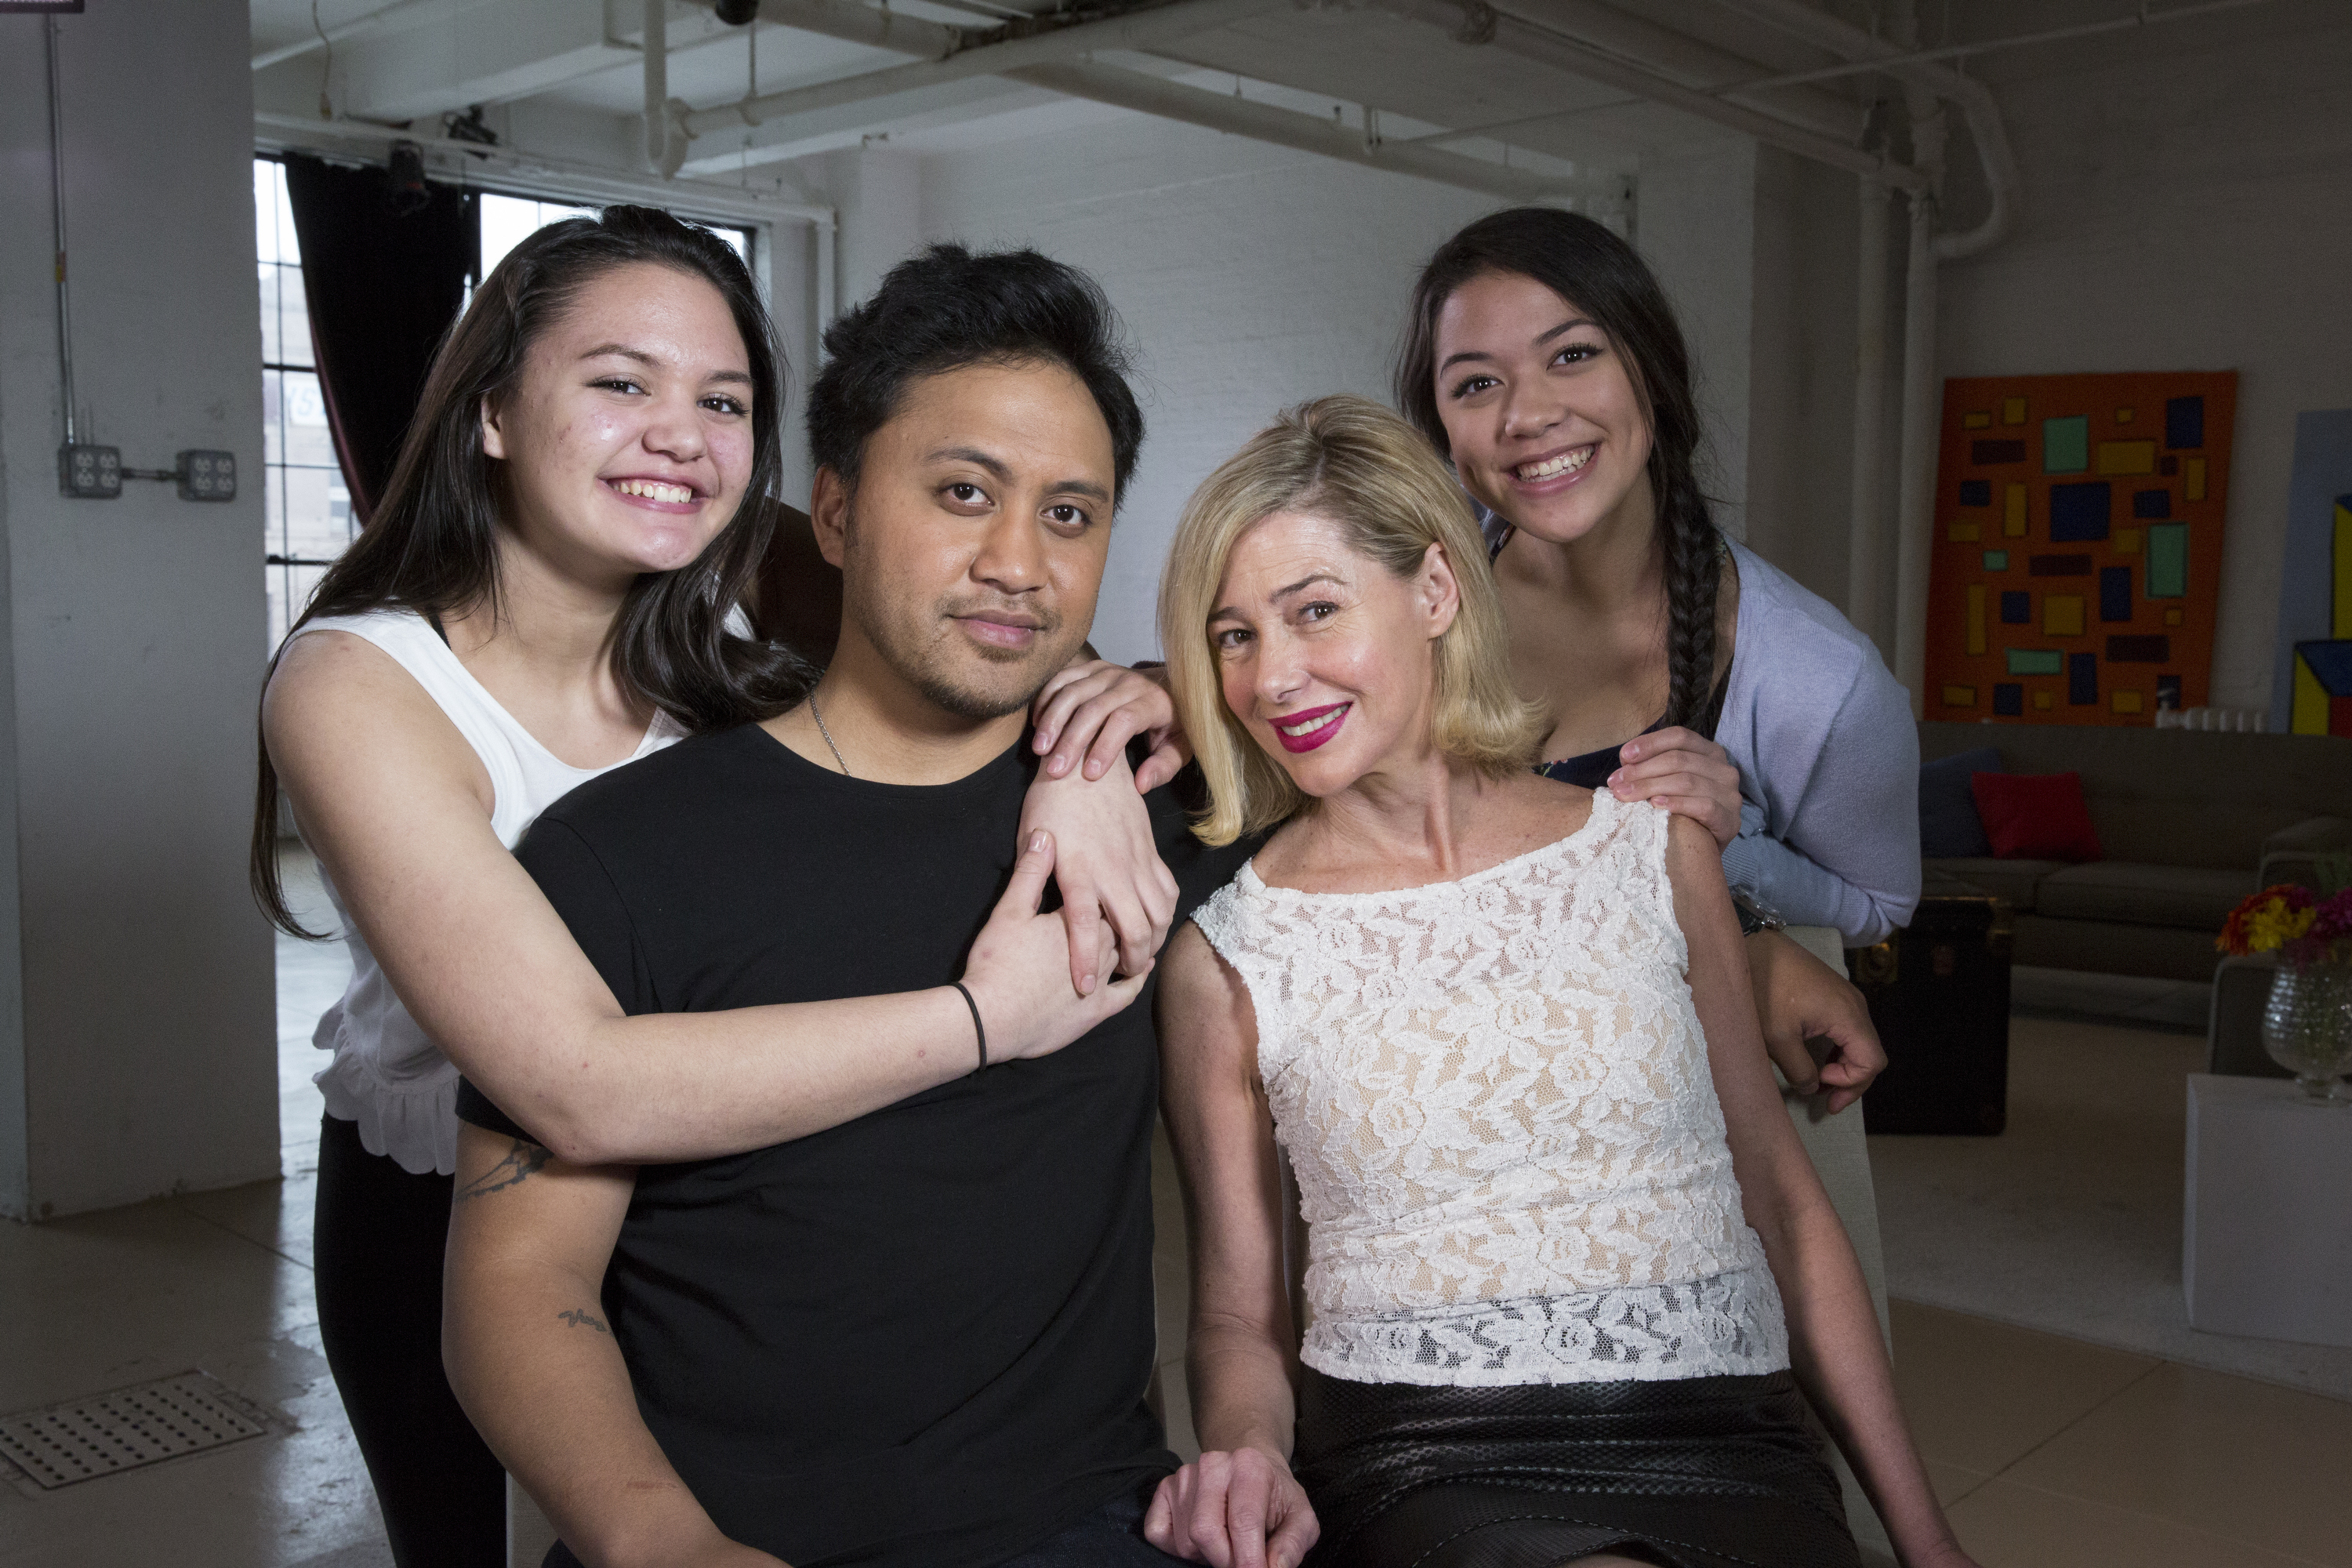 Mary Kay Letourneau and Vili Fualaau: Their Shocking Interview